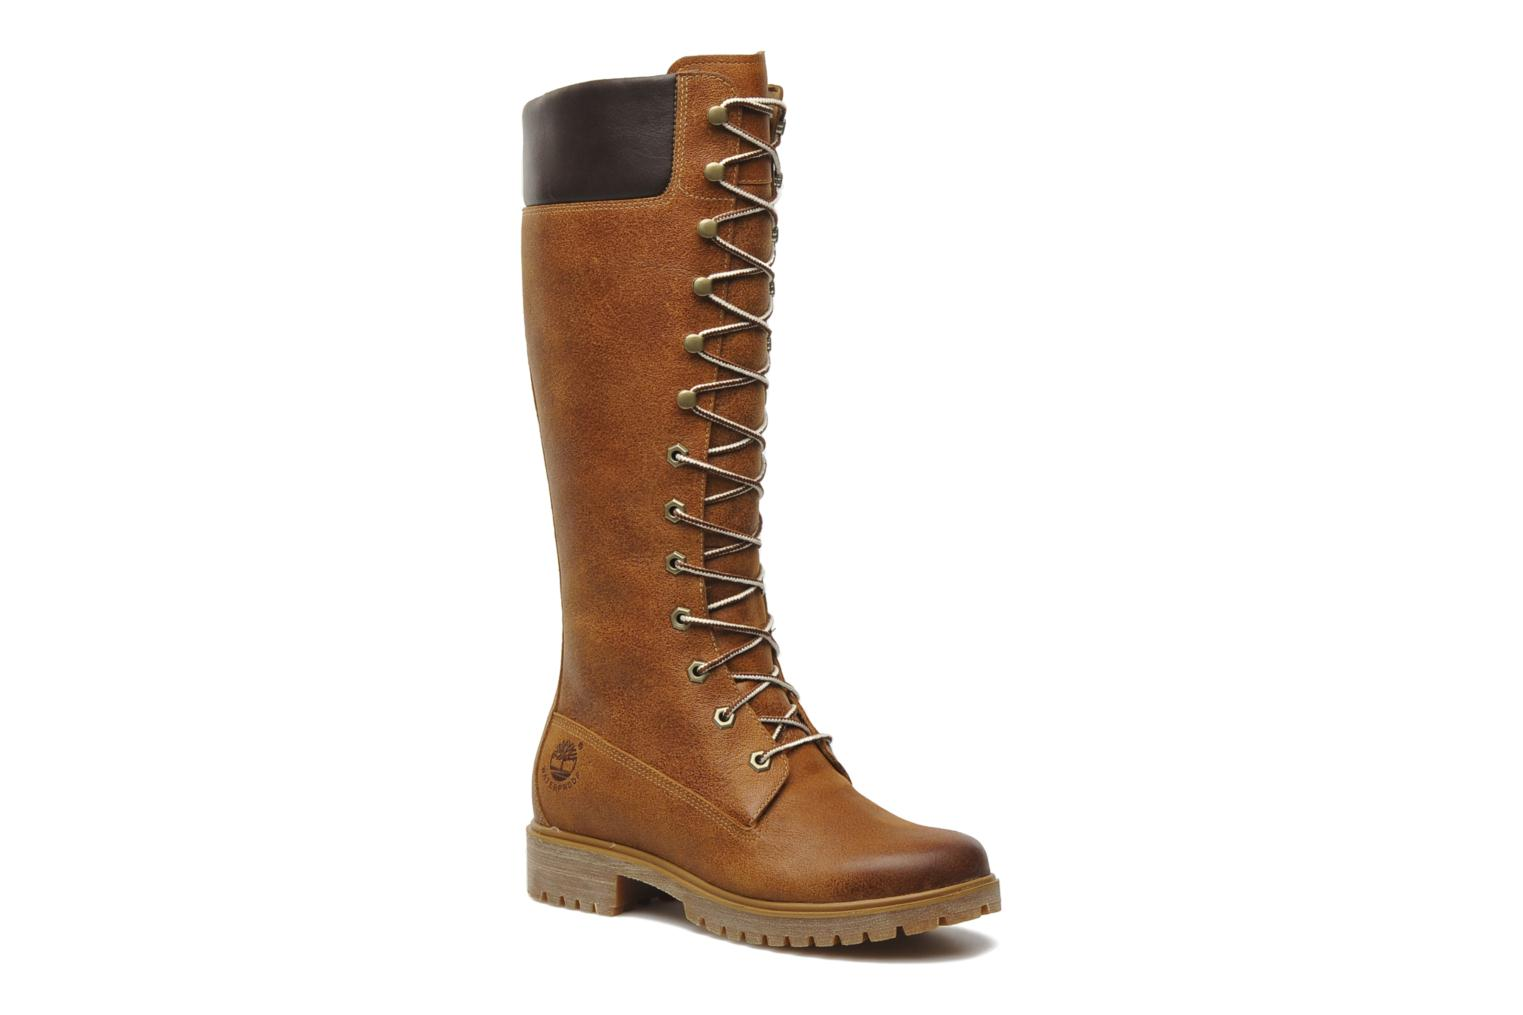 Timberland Mid Wp, bottes Pour Hommes - Marron, Taille: 40